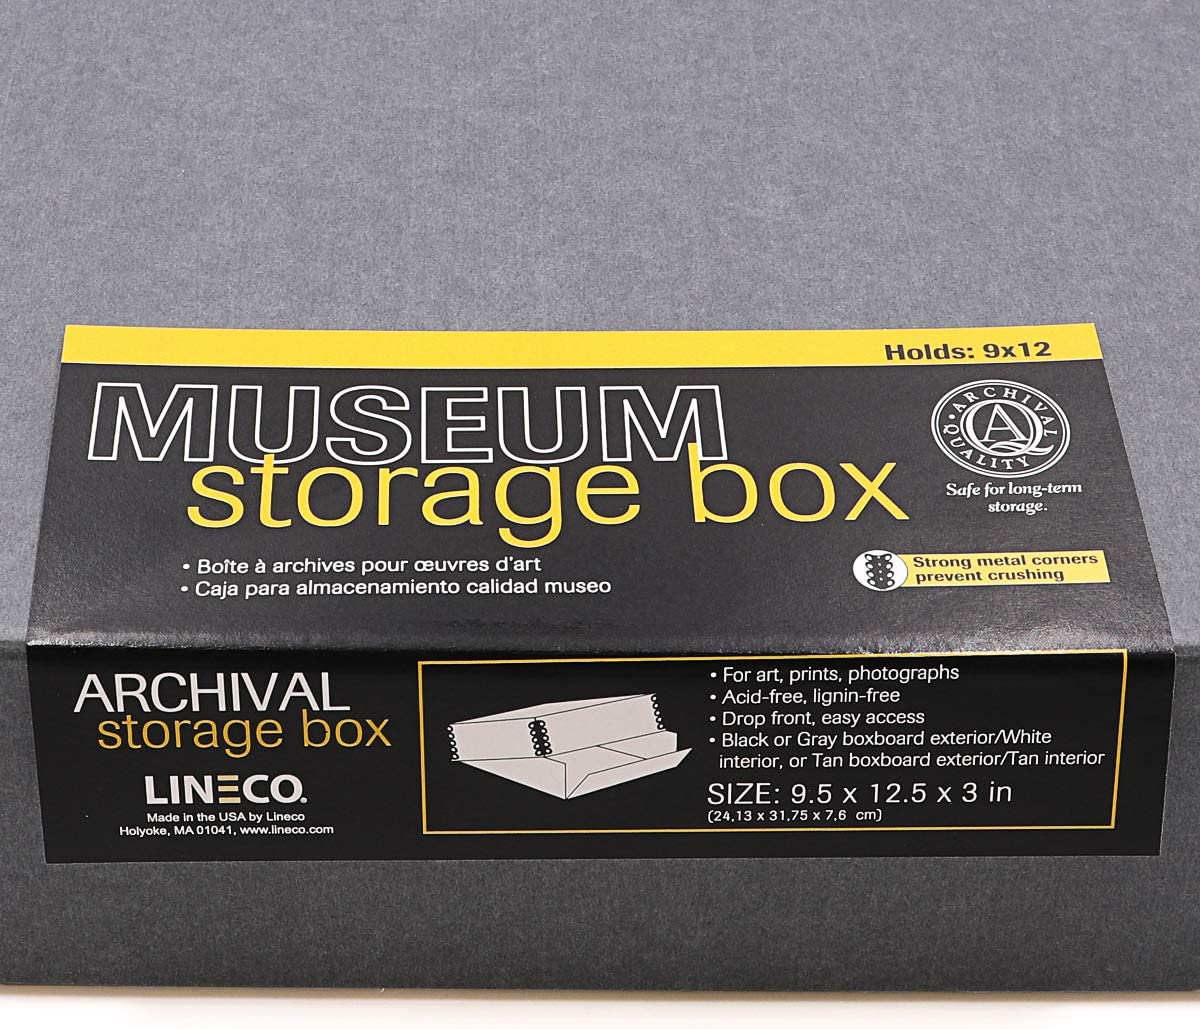 Black Exterior Lineco Museum Storage Box Removable Lid and Archival Drop Front Design Acid-Free with Metal Edge Lignin-Free Store Photos Documents Cards Magazines Prints 9.5 x 12 x 3 Inches